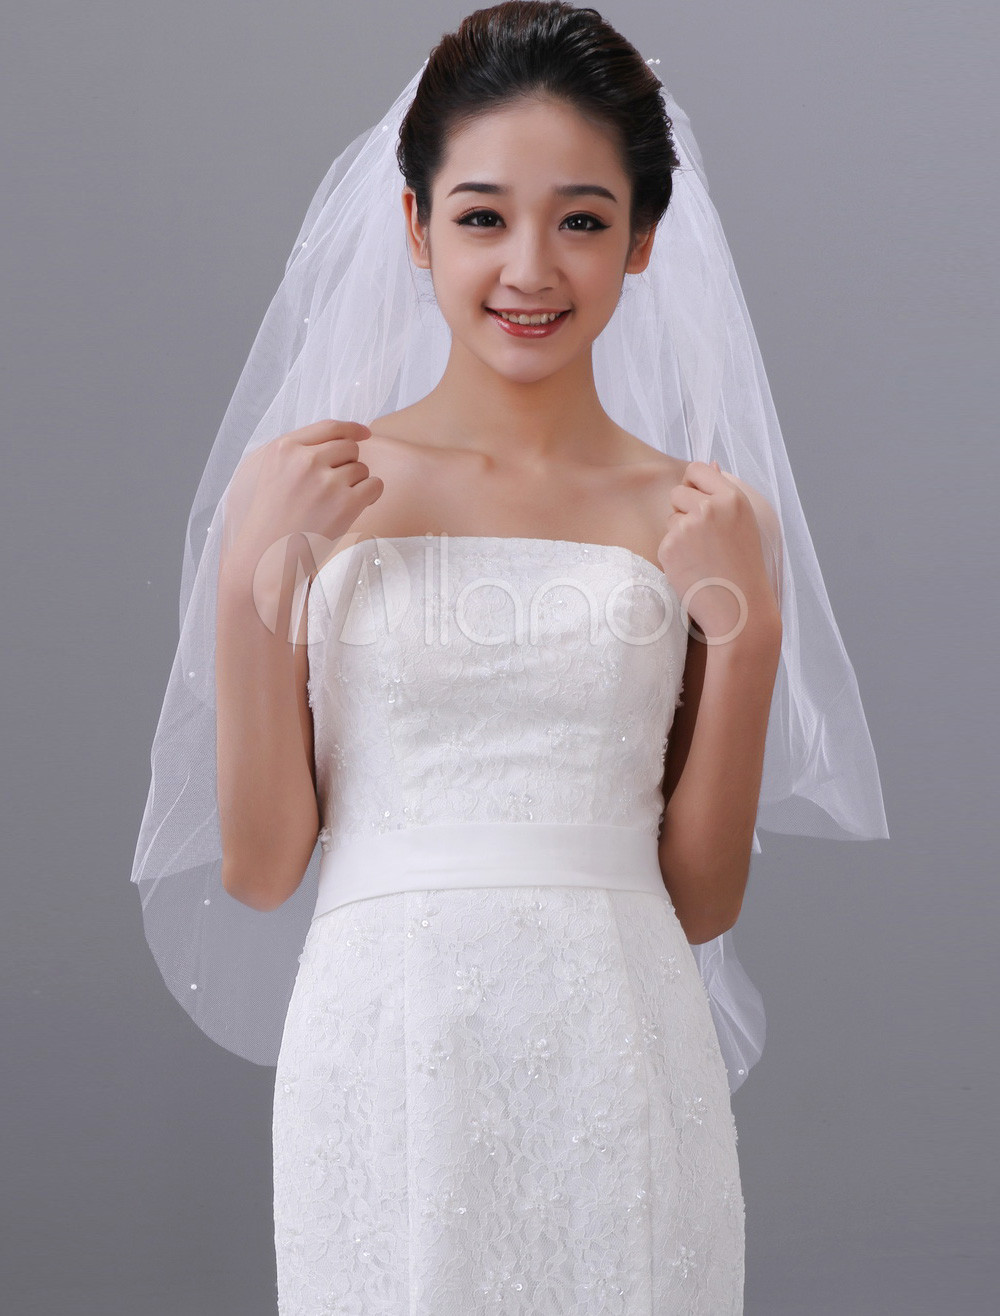 Fantastic White One-Tier Beading Tulle Oval Wedding Veil